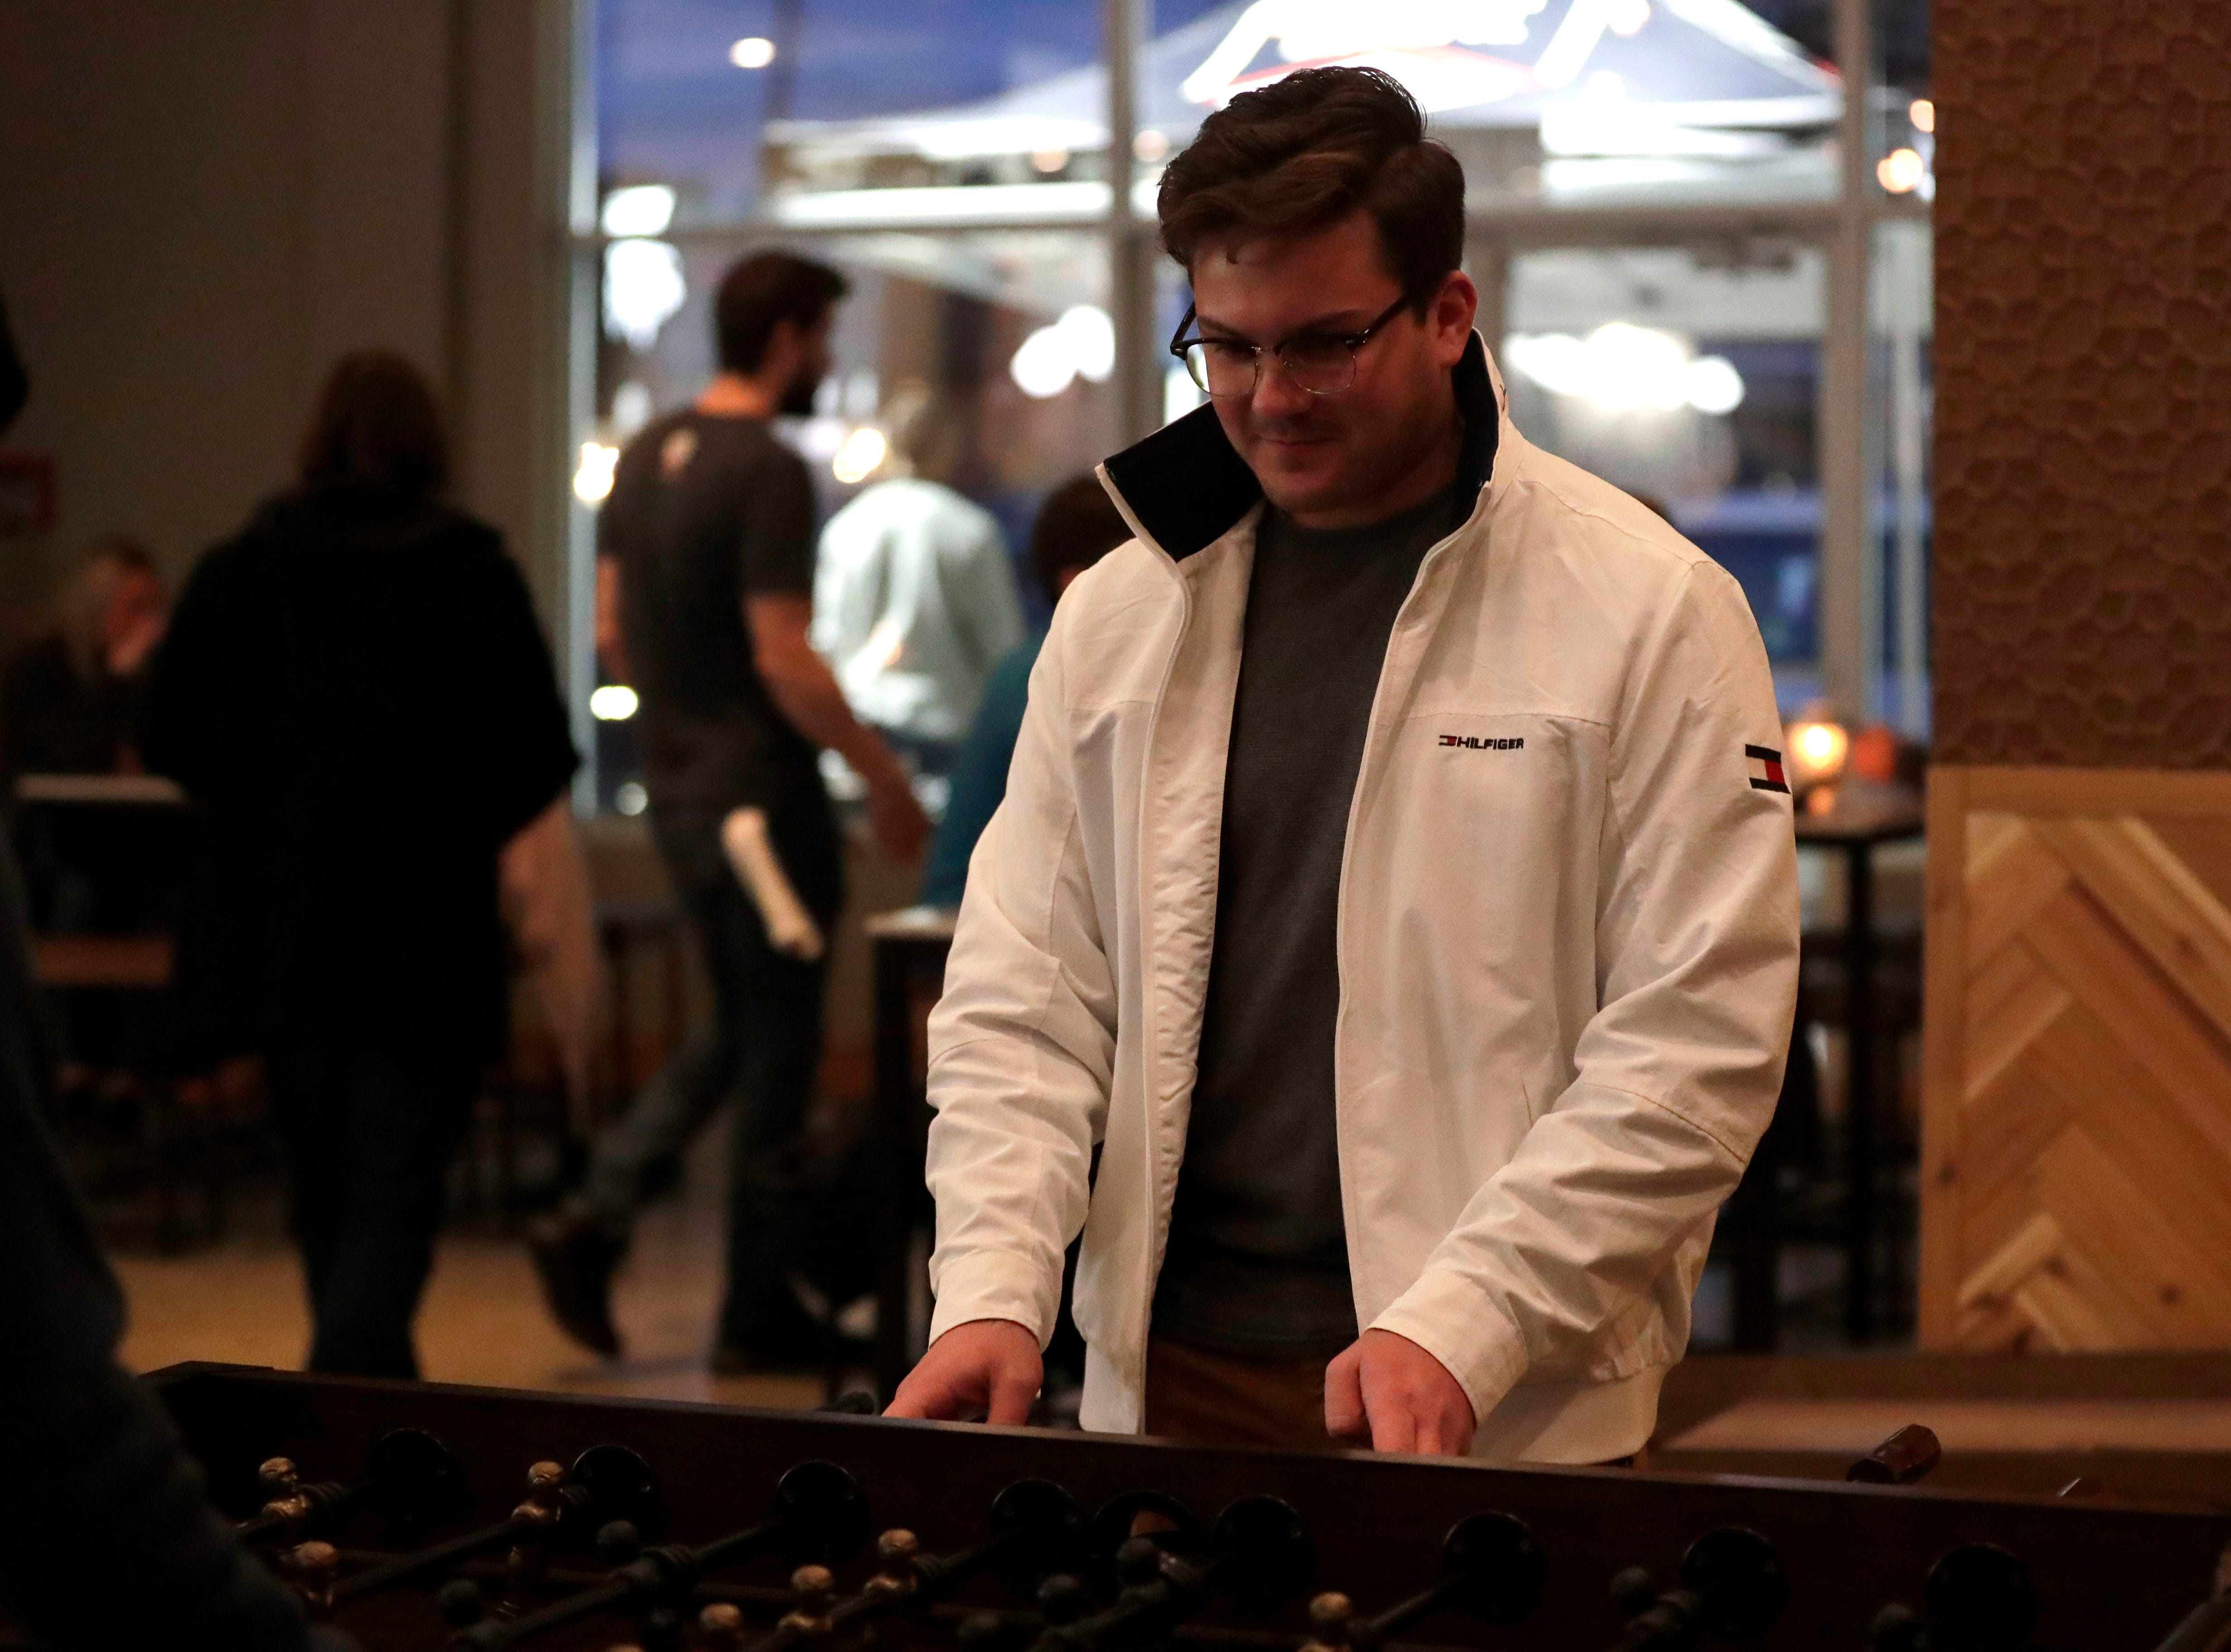 Tyler French challenges his friend to a round of foosball at the soft opening of the new Proof Brewery, Friday, Feb. 1, 2019.